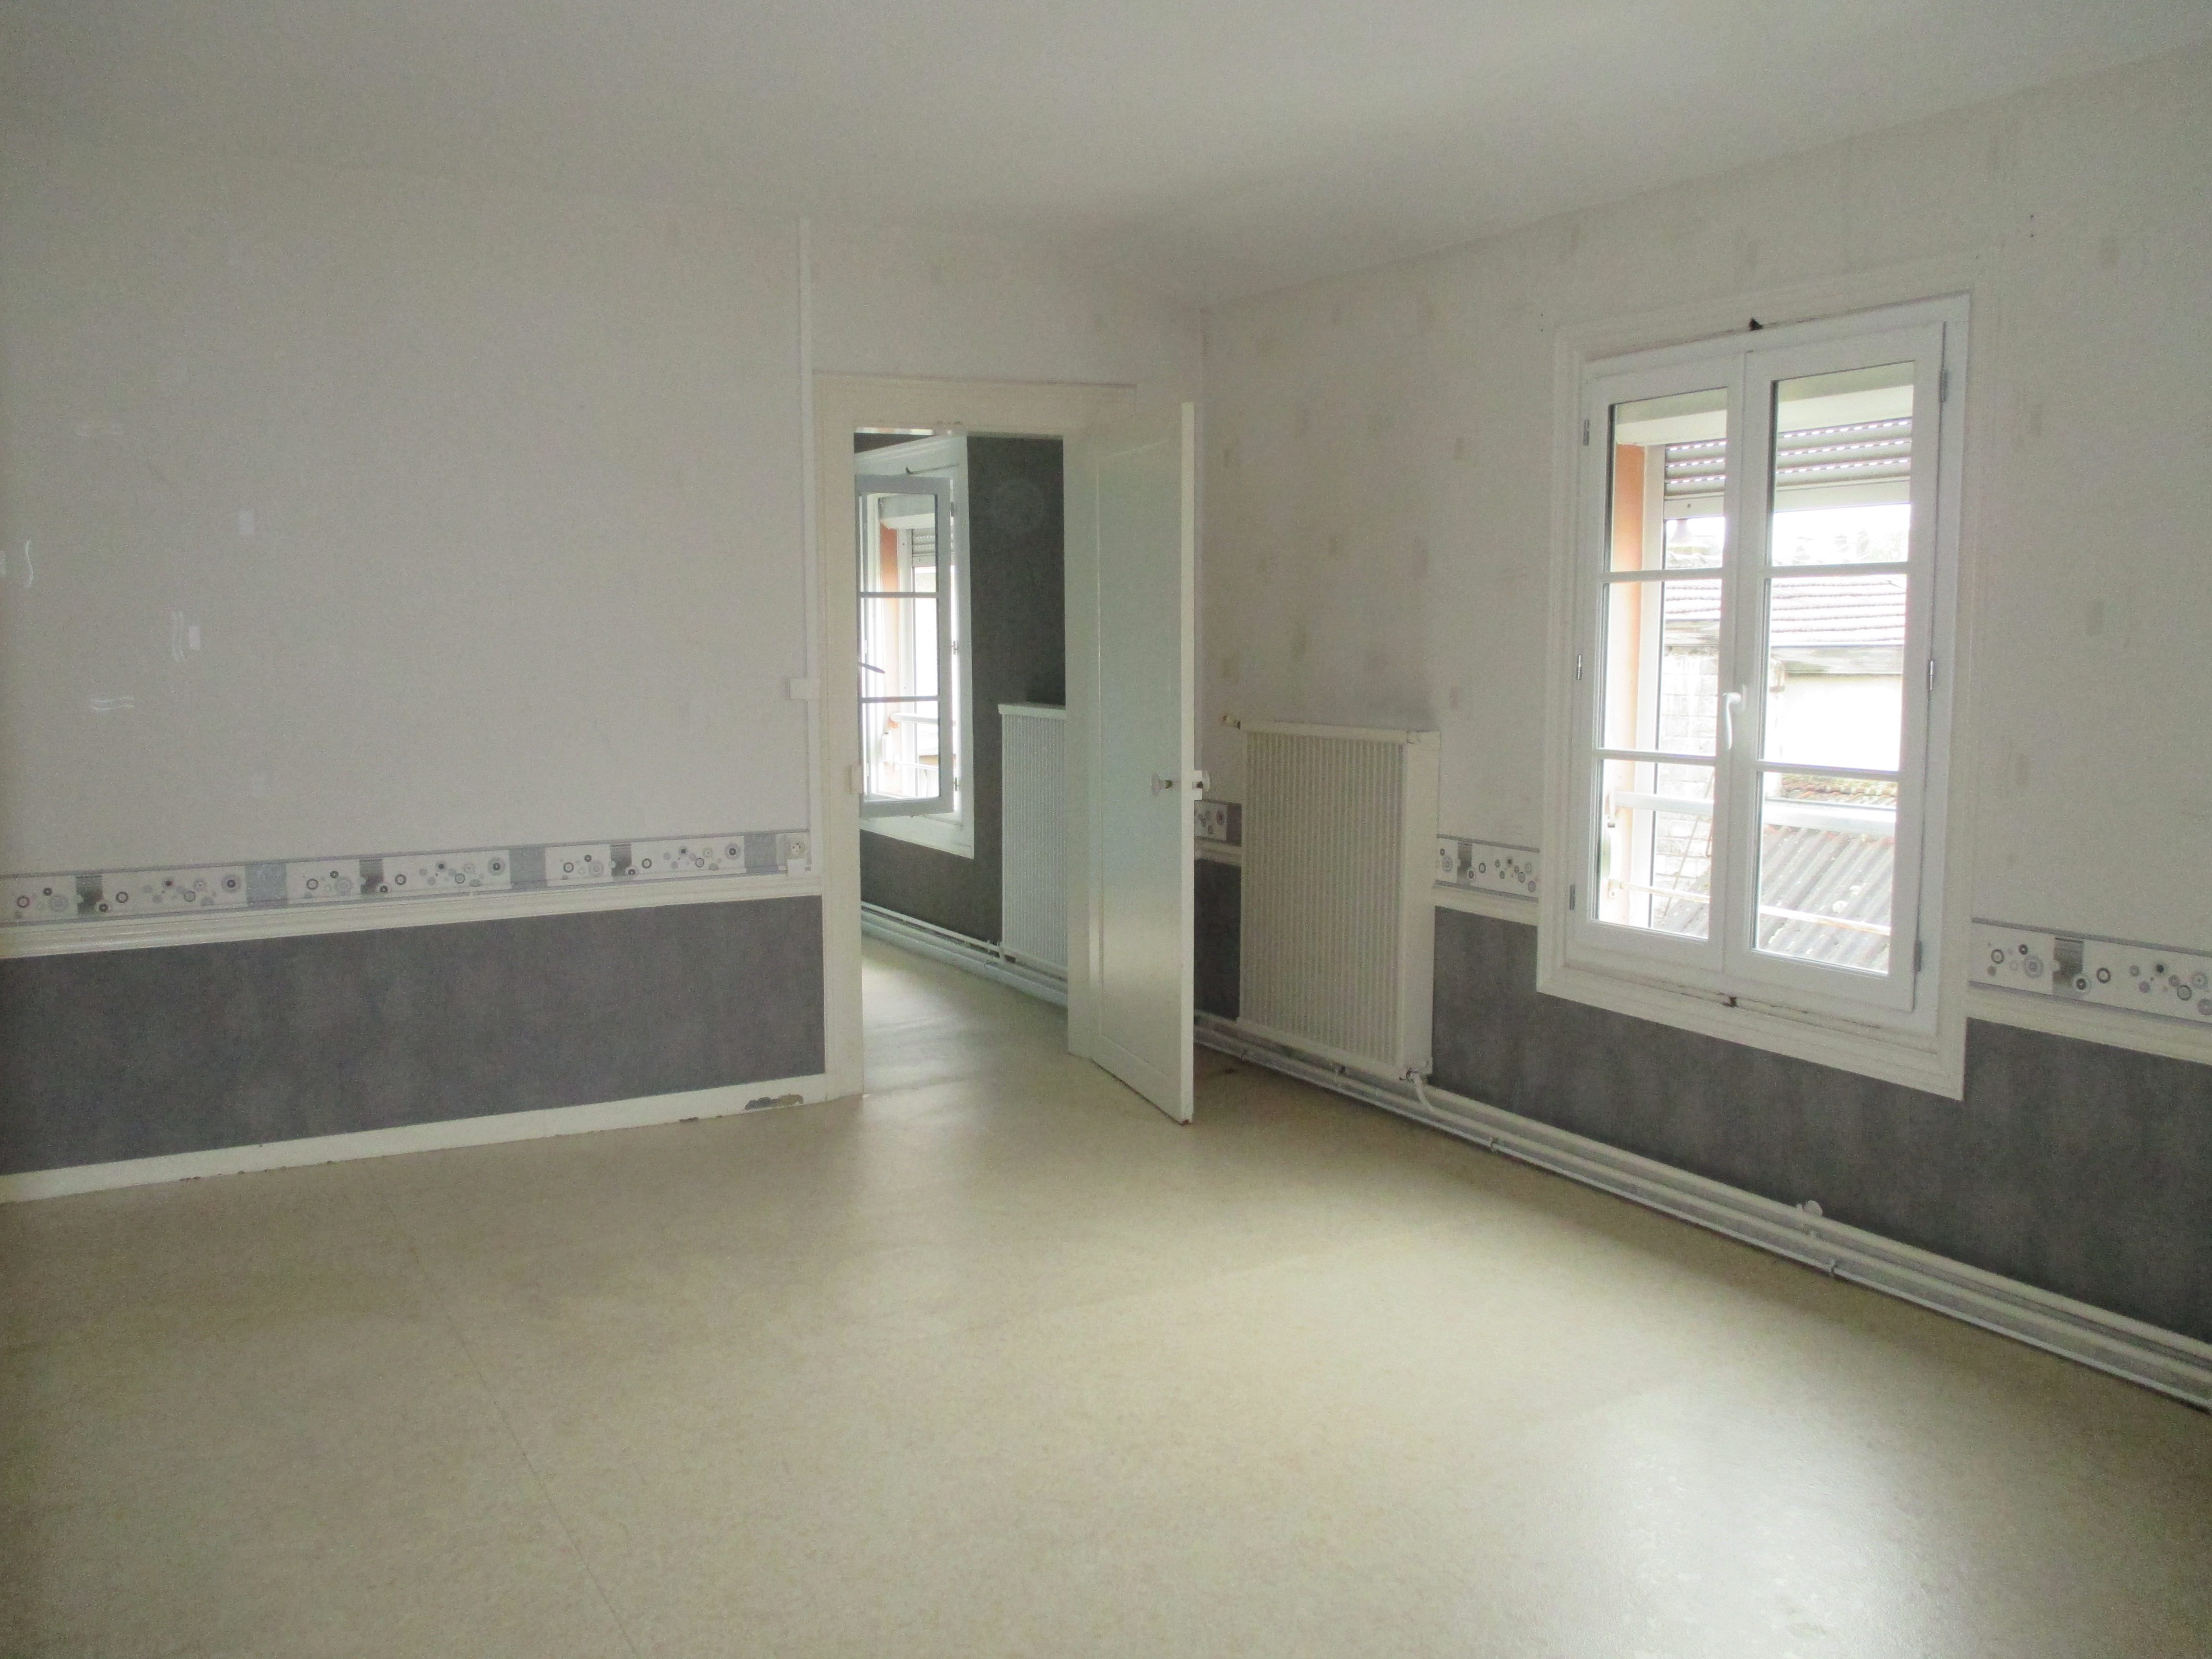 Damonte LOCATION APPARTEMENT - REF G266